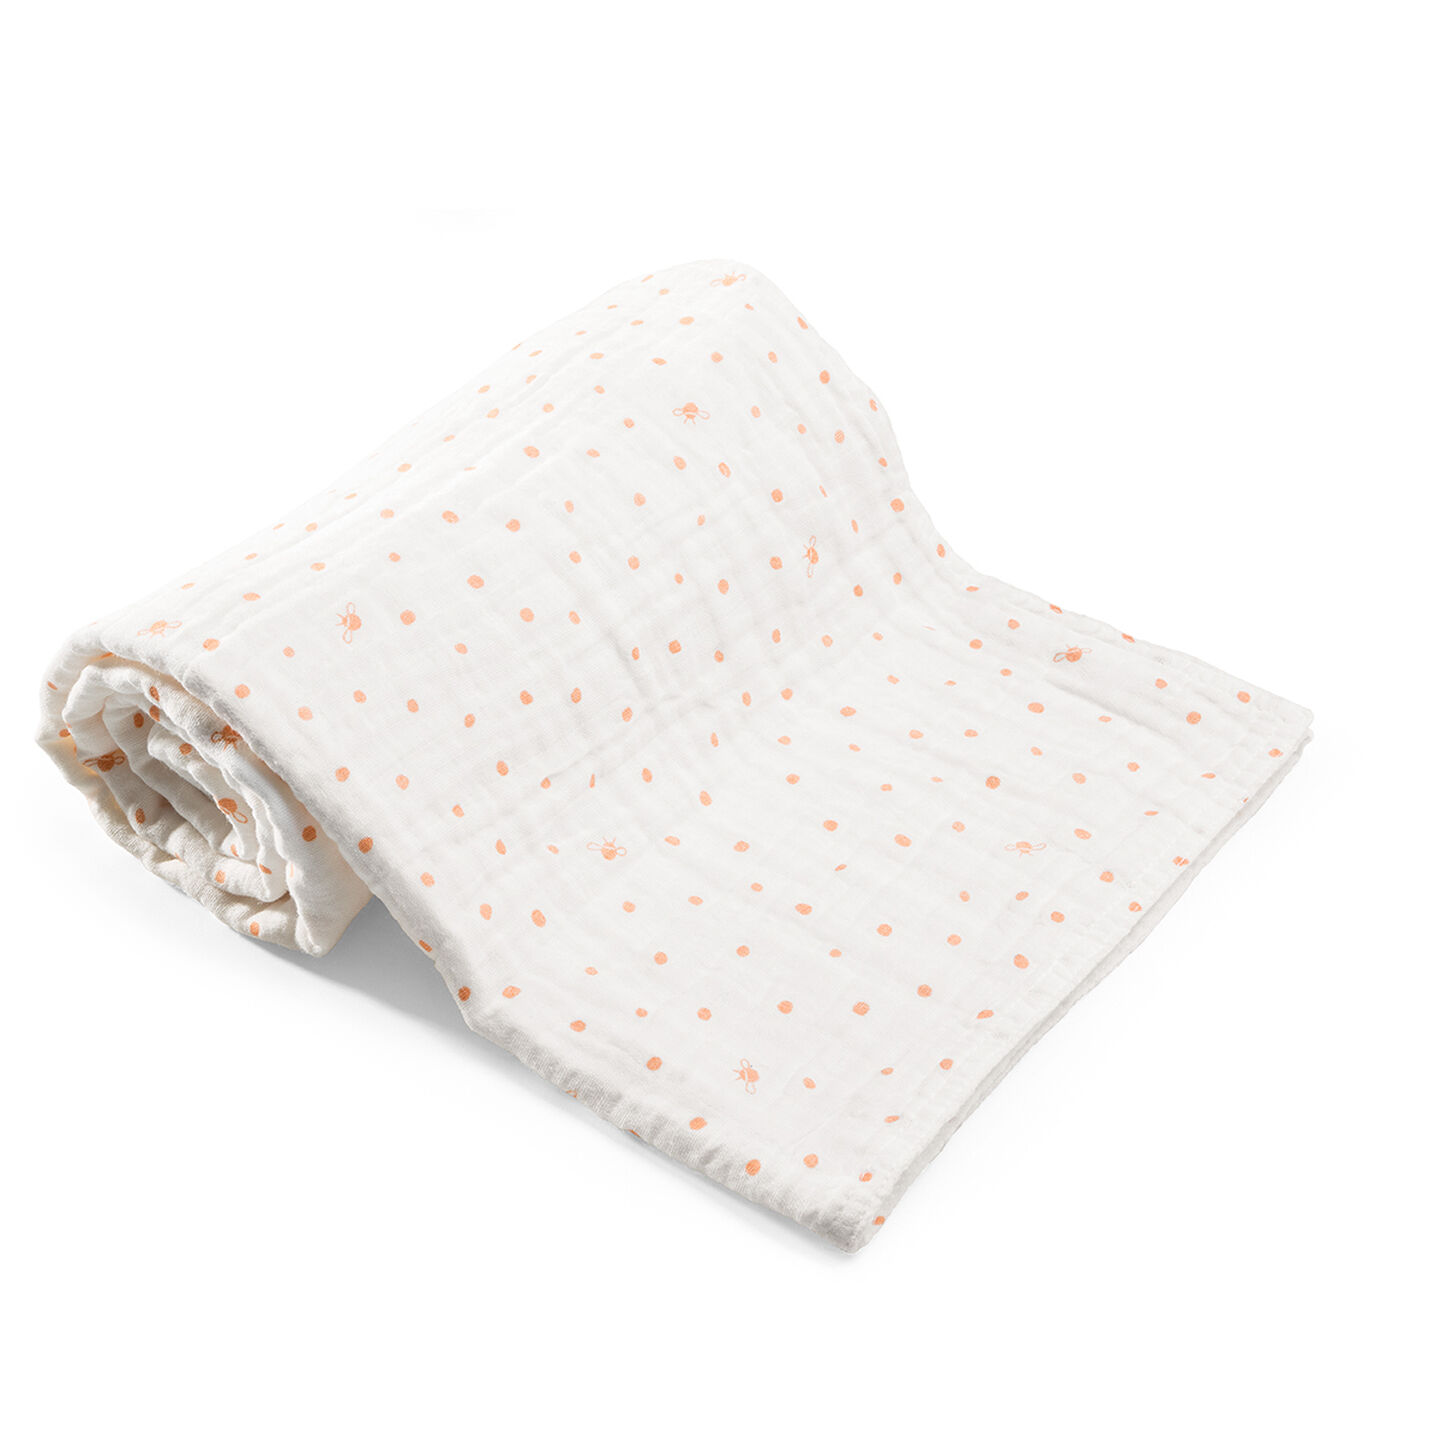 Blanket, Muslin Cotton, Coral Bee